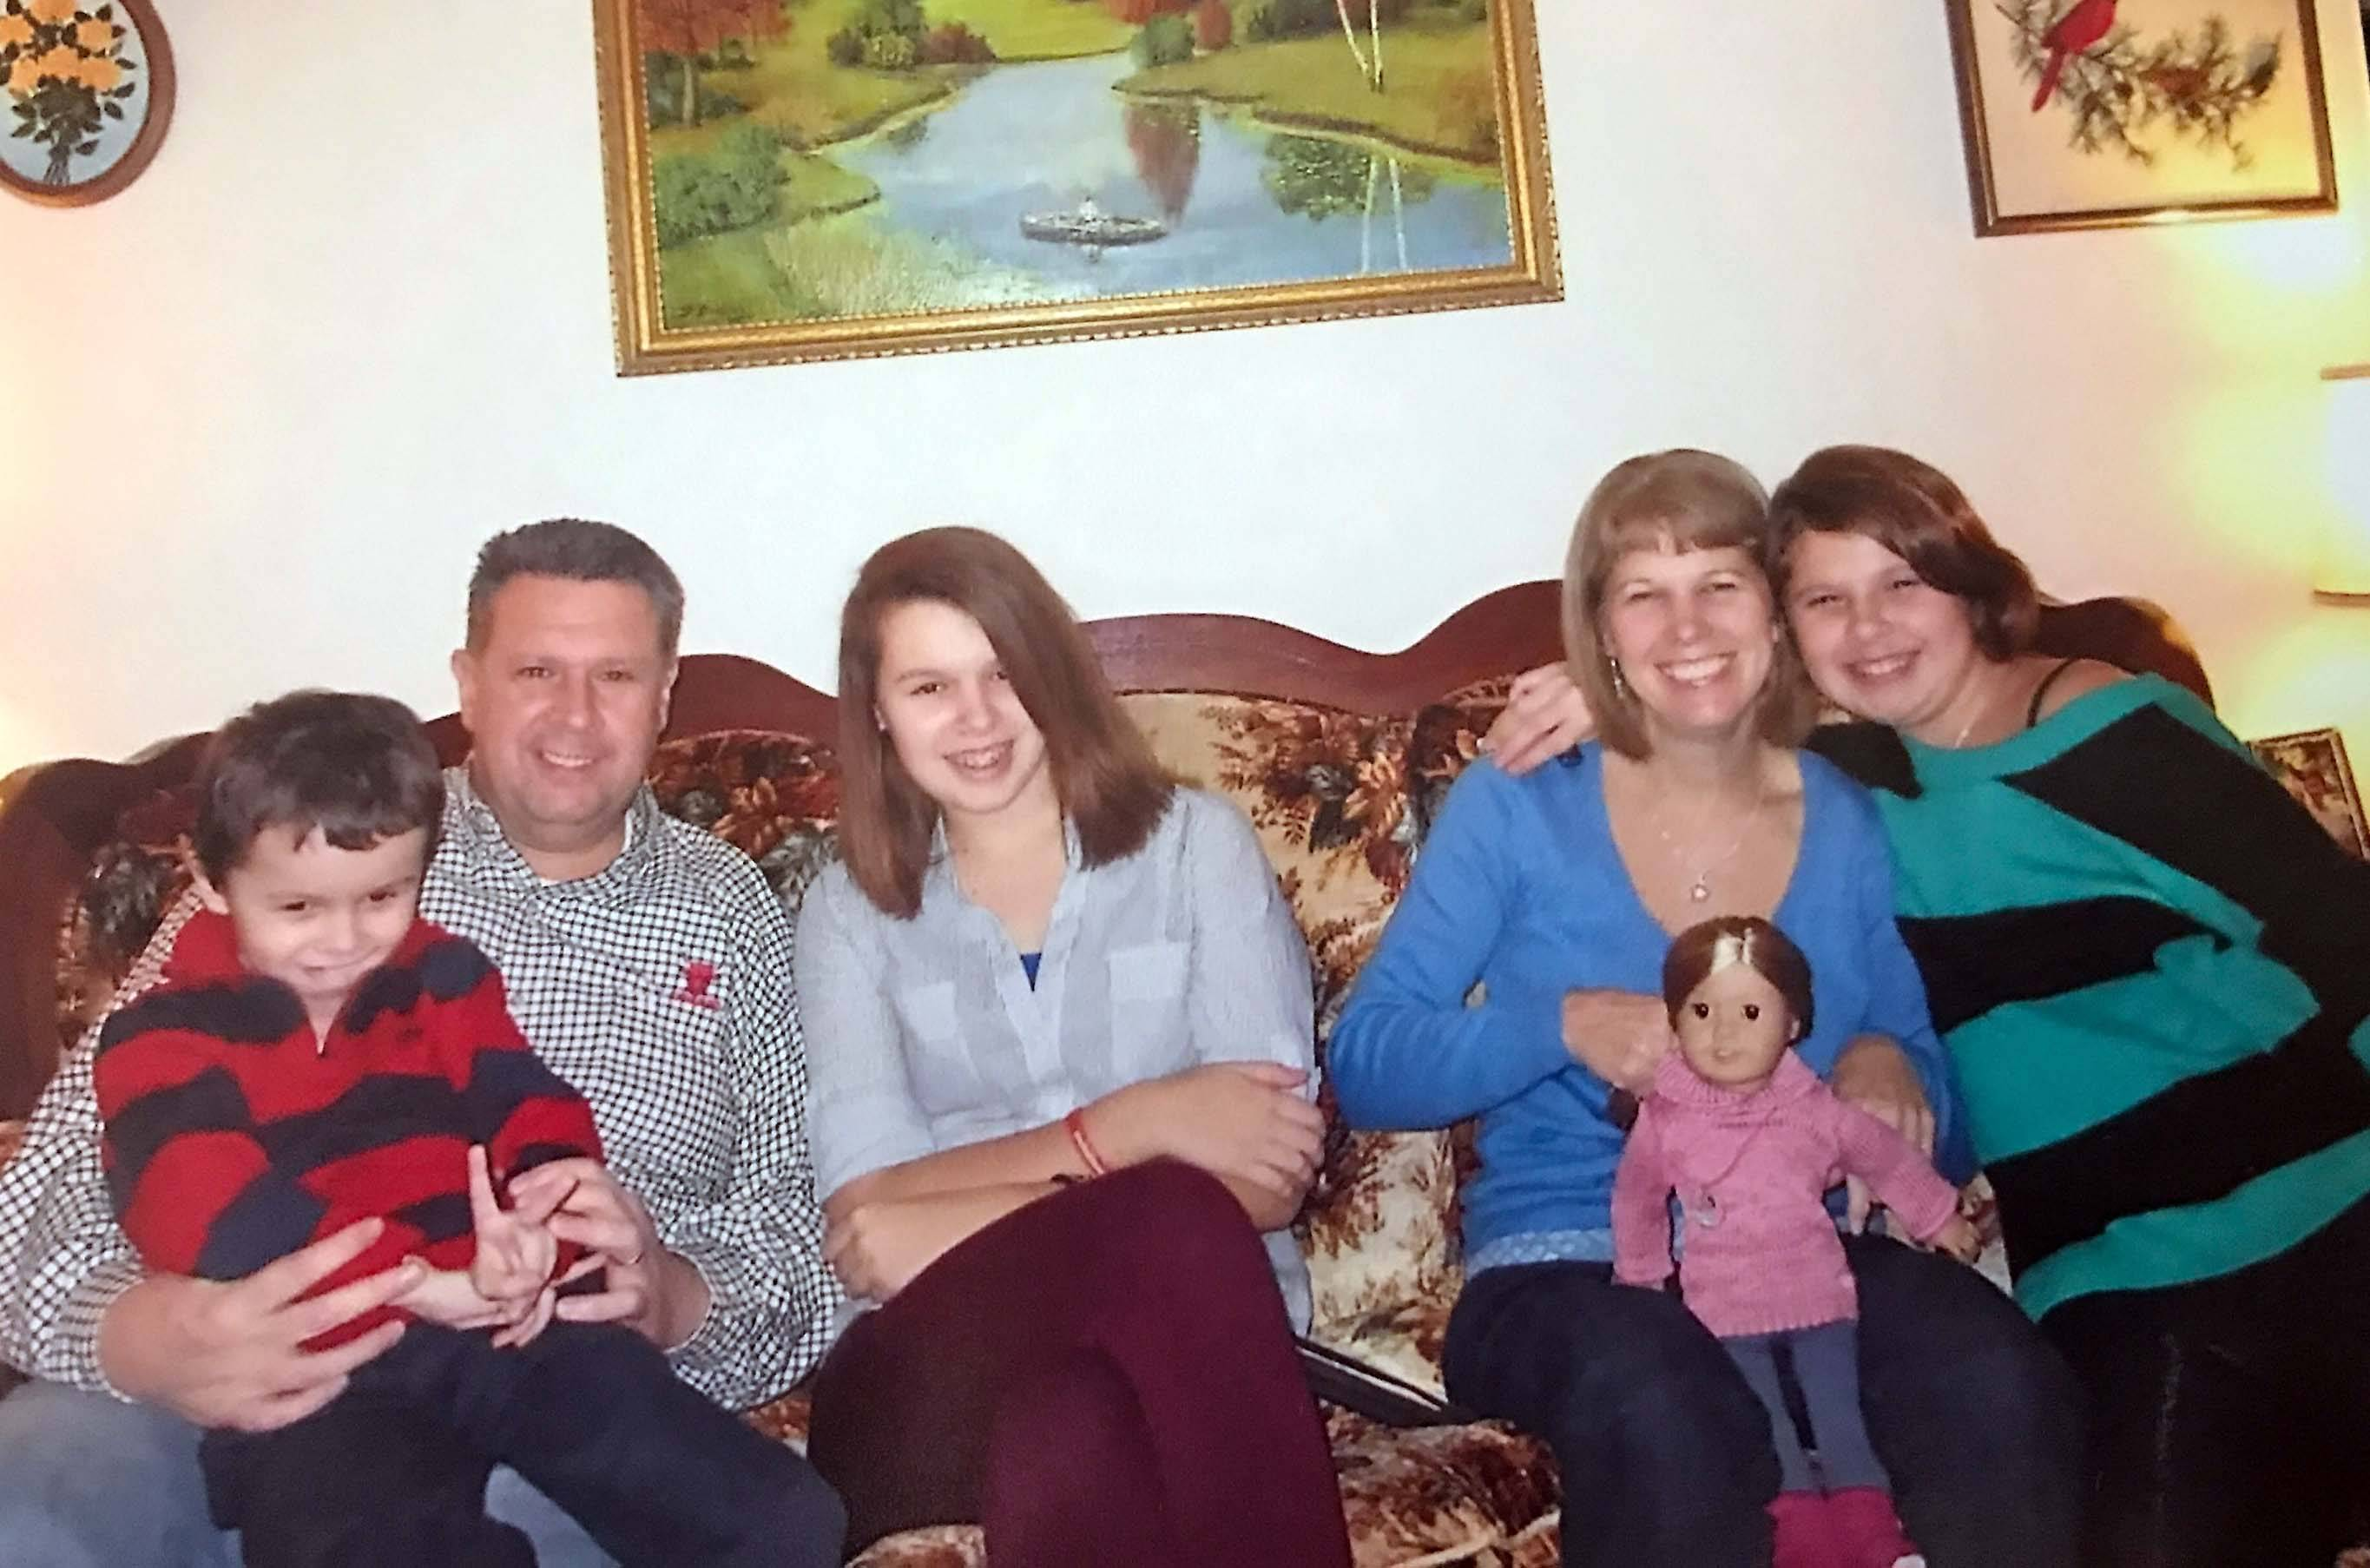 A photo of the Crawford family, from left to right, Christian, Kevin, Kirsten, Hailee and Anita.